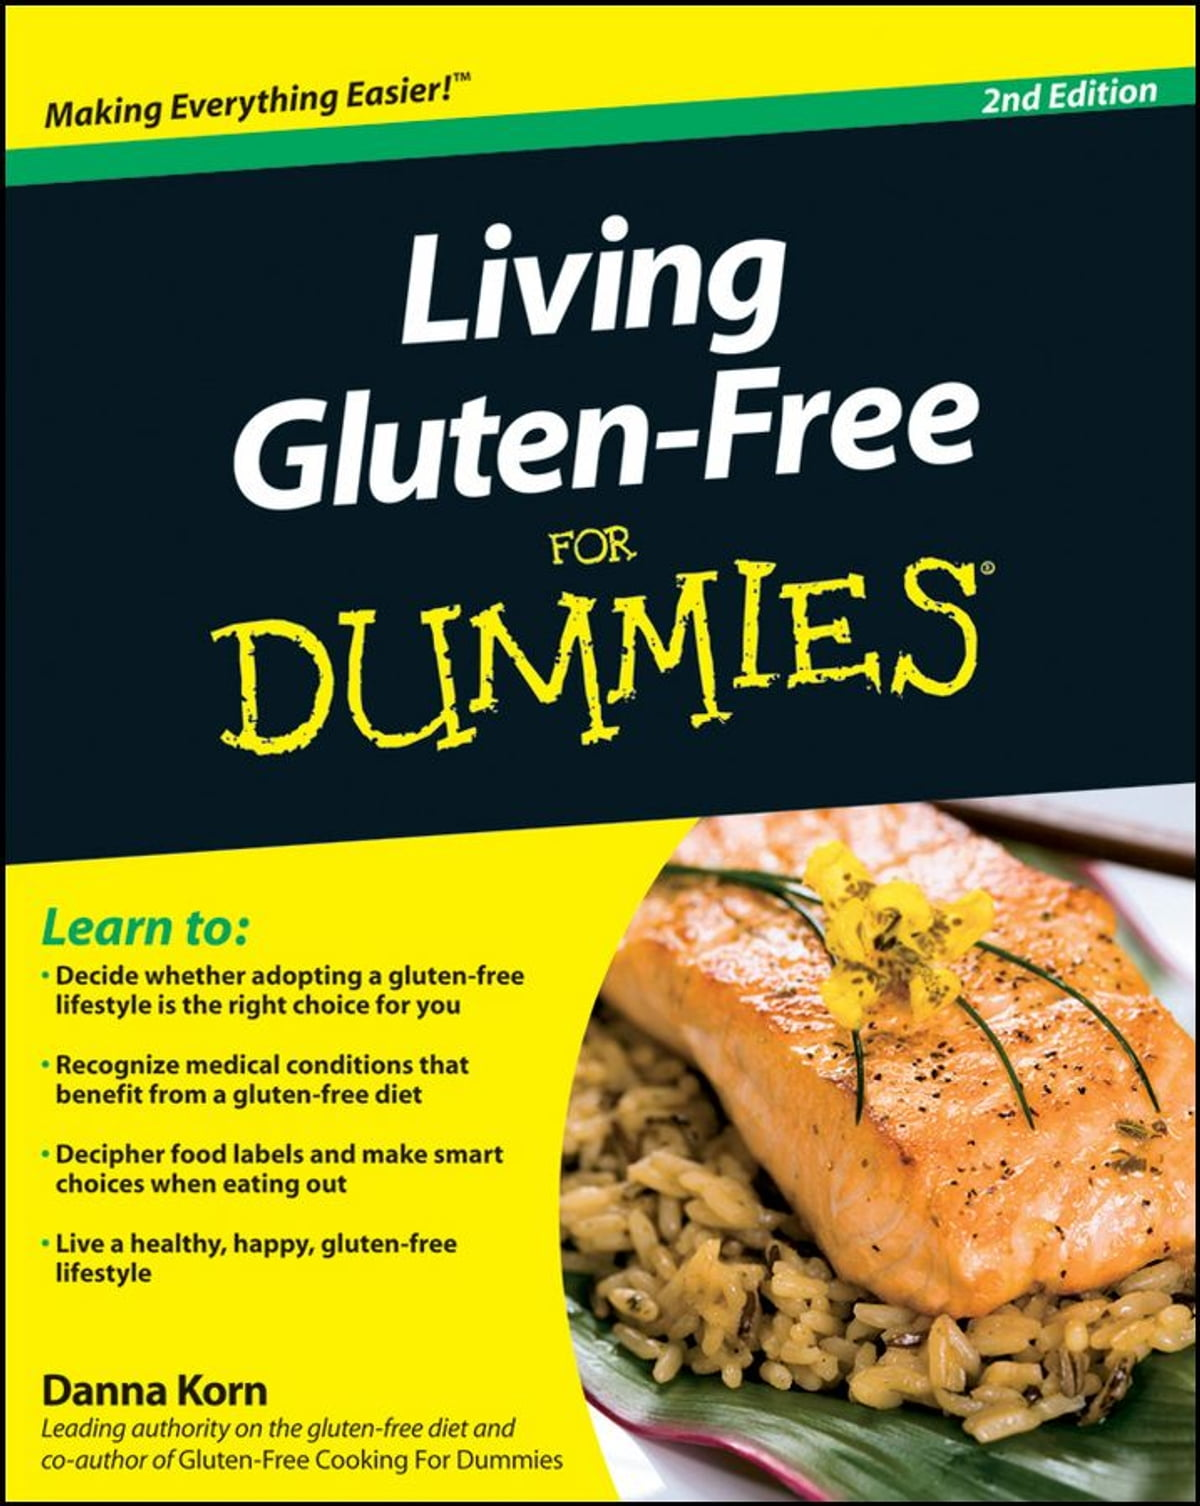 Living Gluten-Free For Dummies eBook by Danna Korn - 9780470644225 |  Rakuten Kobo